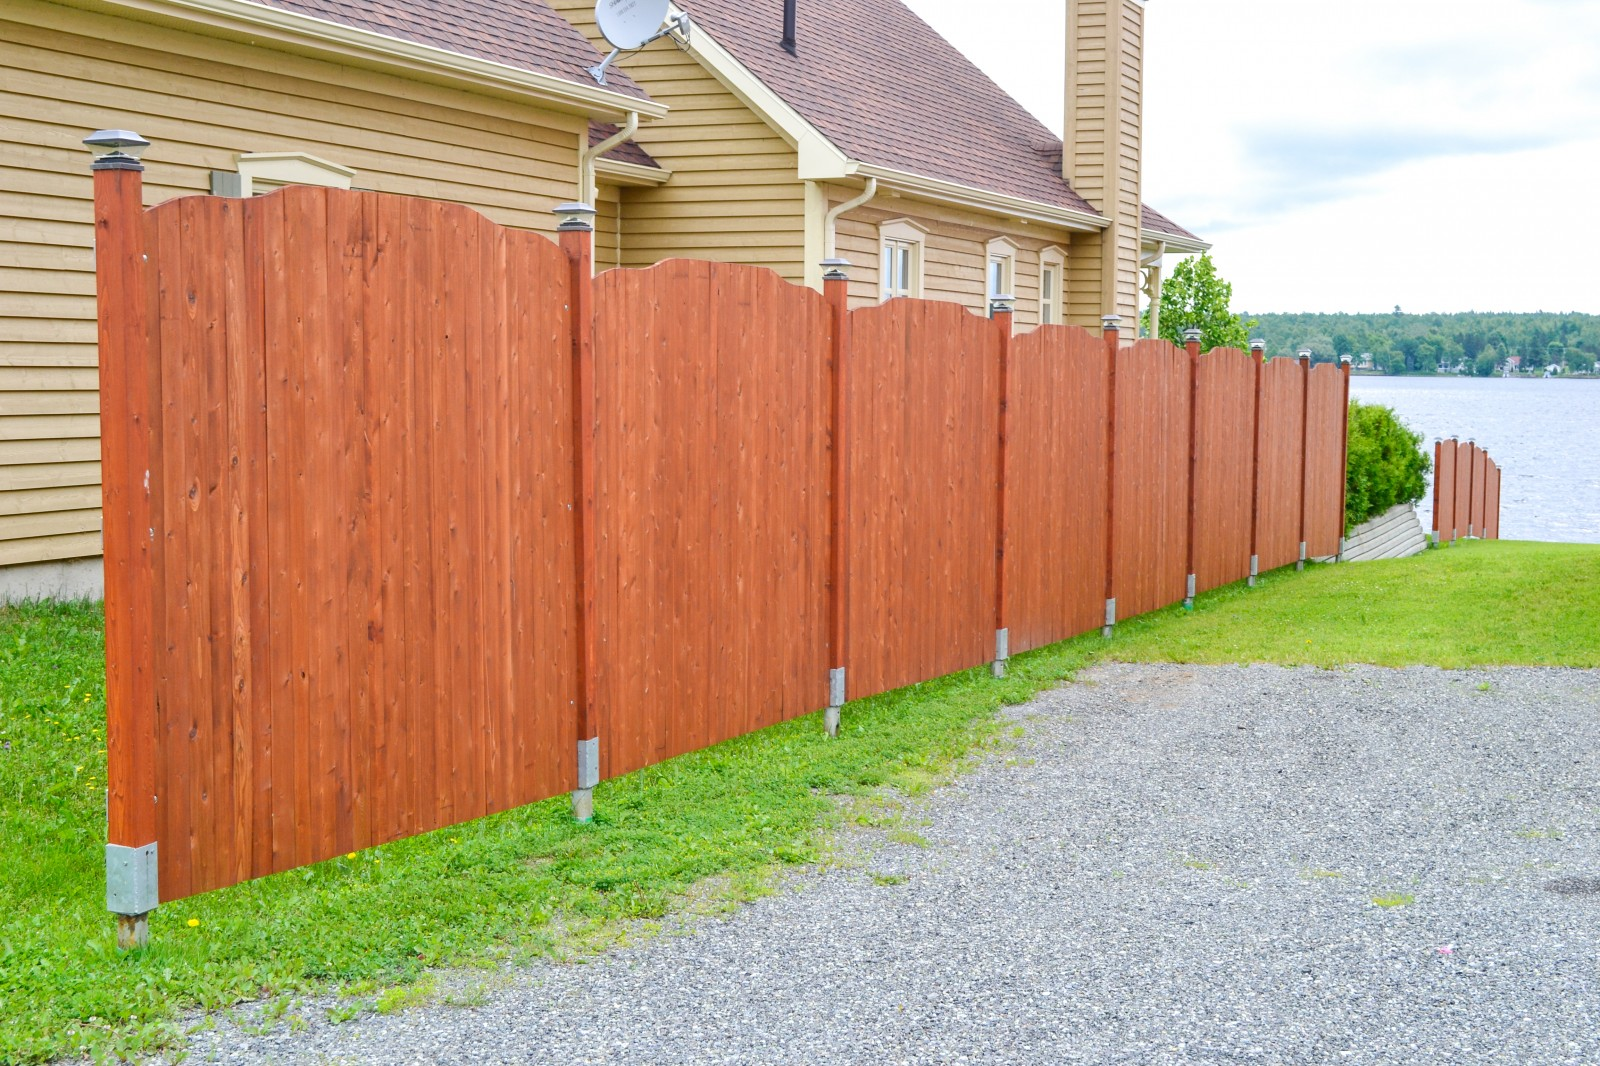 Screw piles on the fence: installation and installation 86